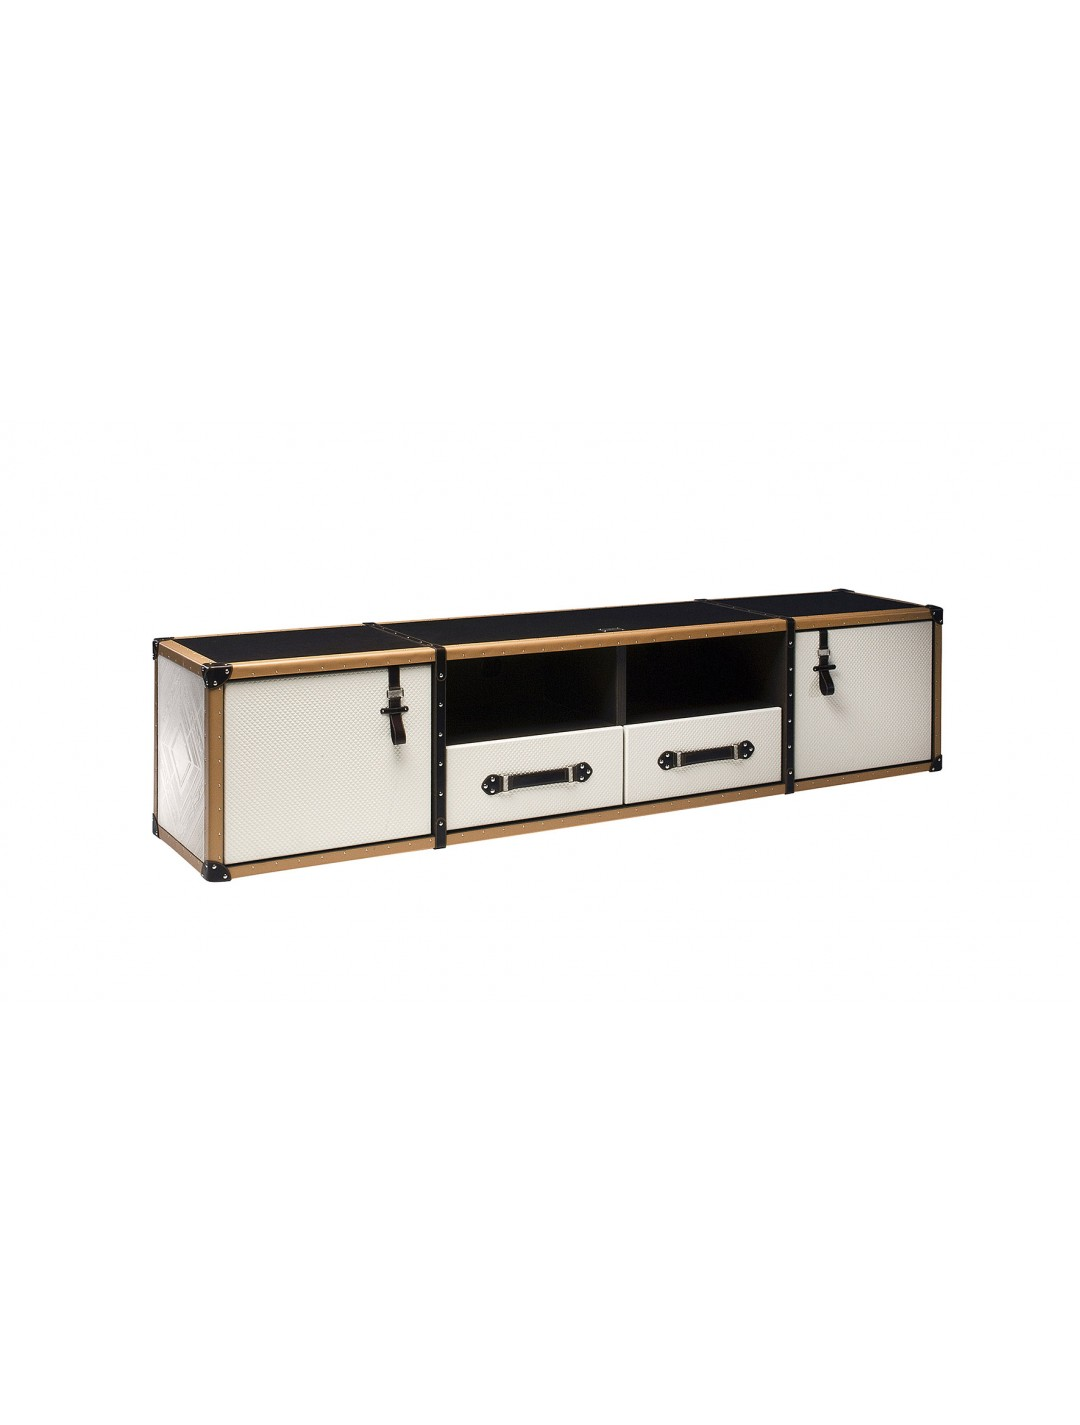 TRAVELER LOW TV SIDEBOARD, FINISH: LEATHER